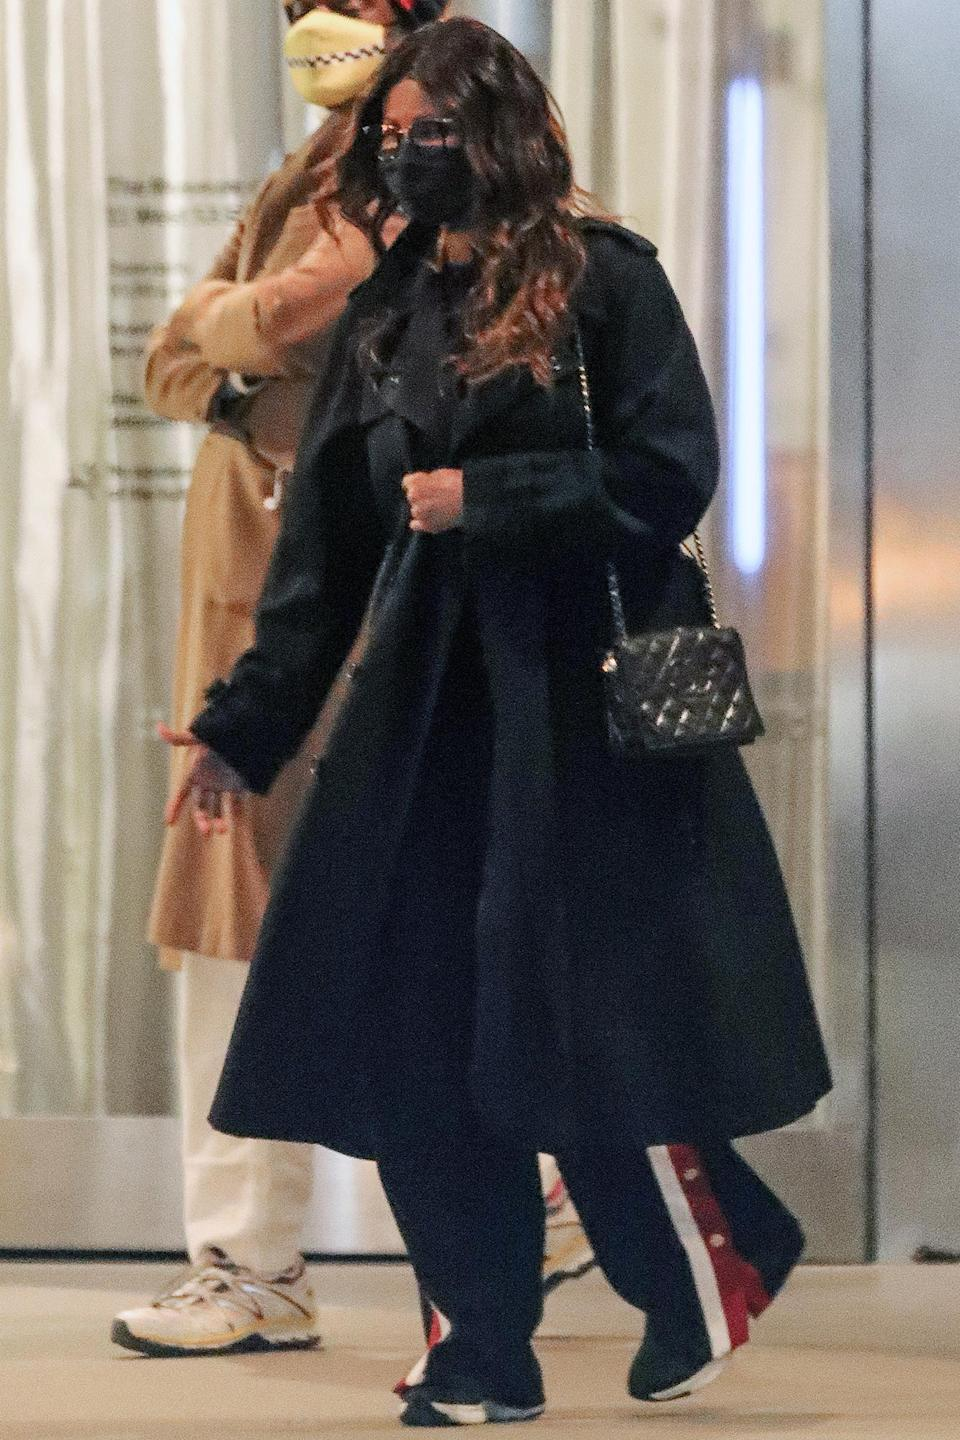 <p>Iman was spotted in New York City on her late husband David Bowie's 74th birthday.</p>